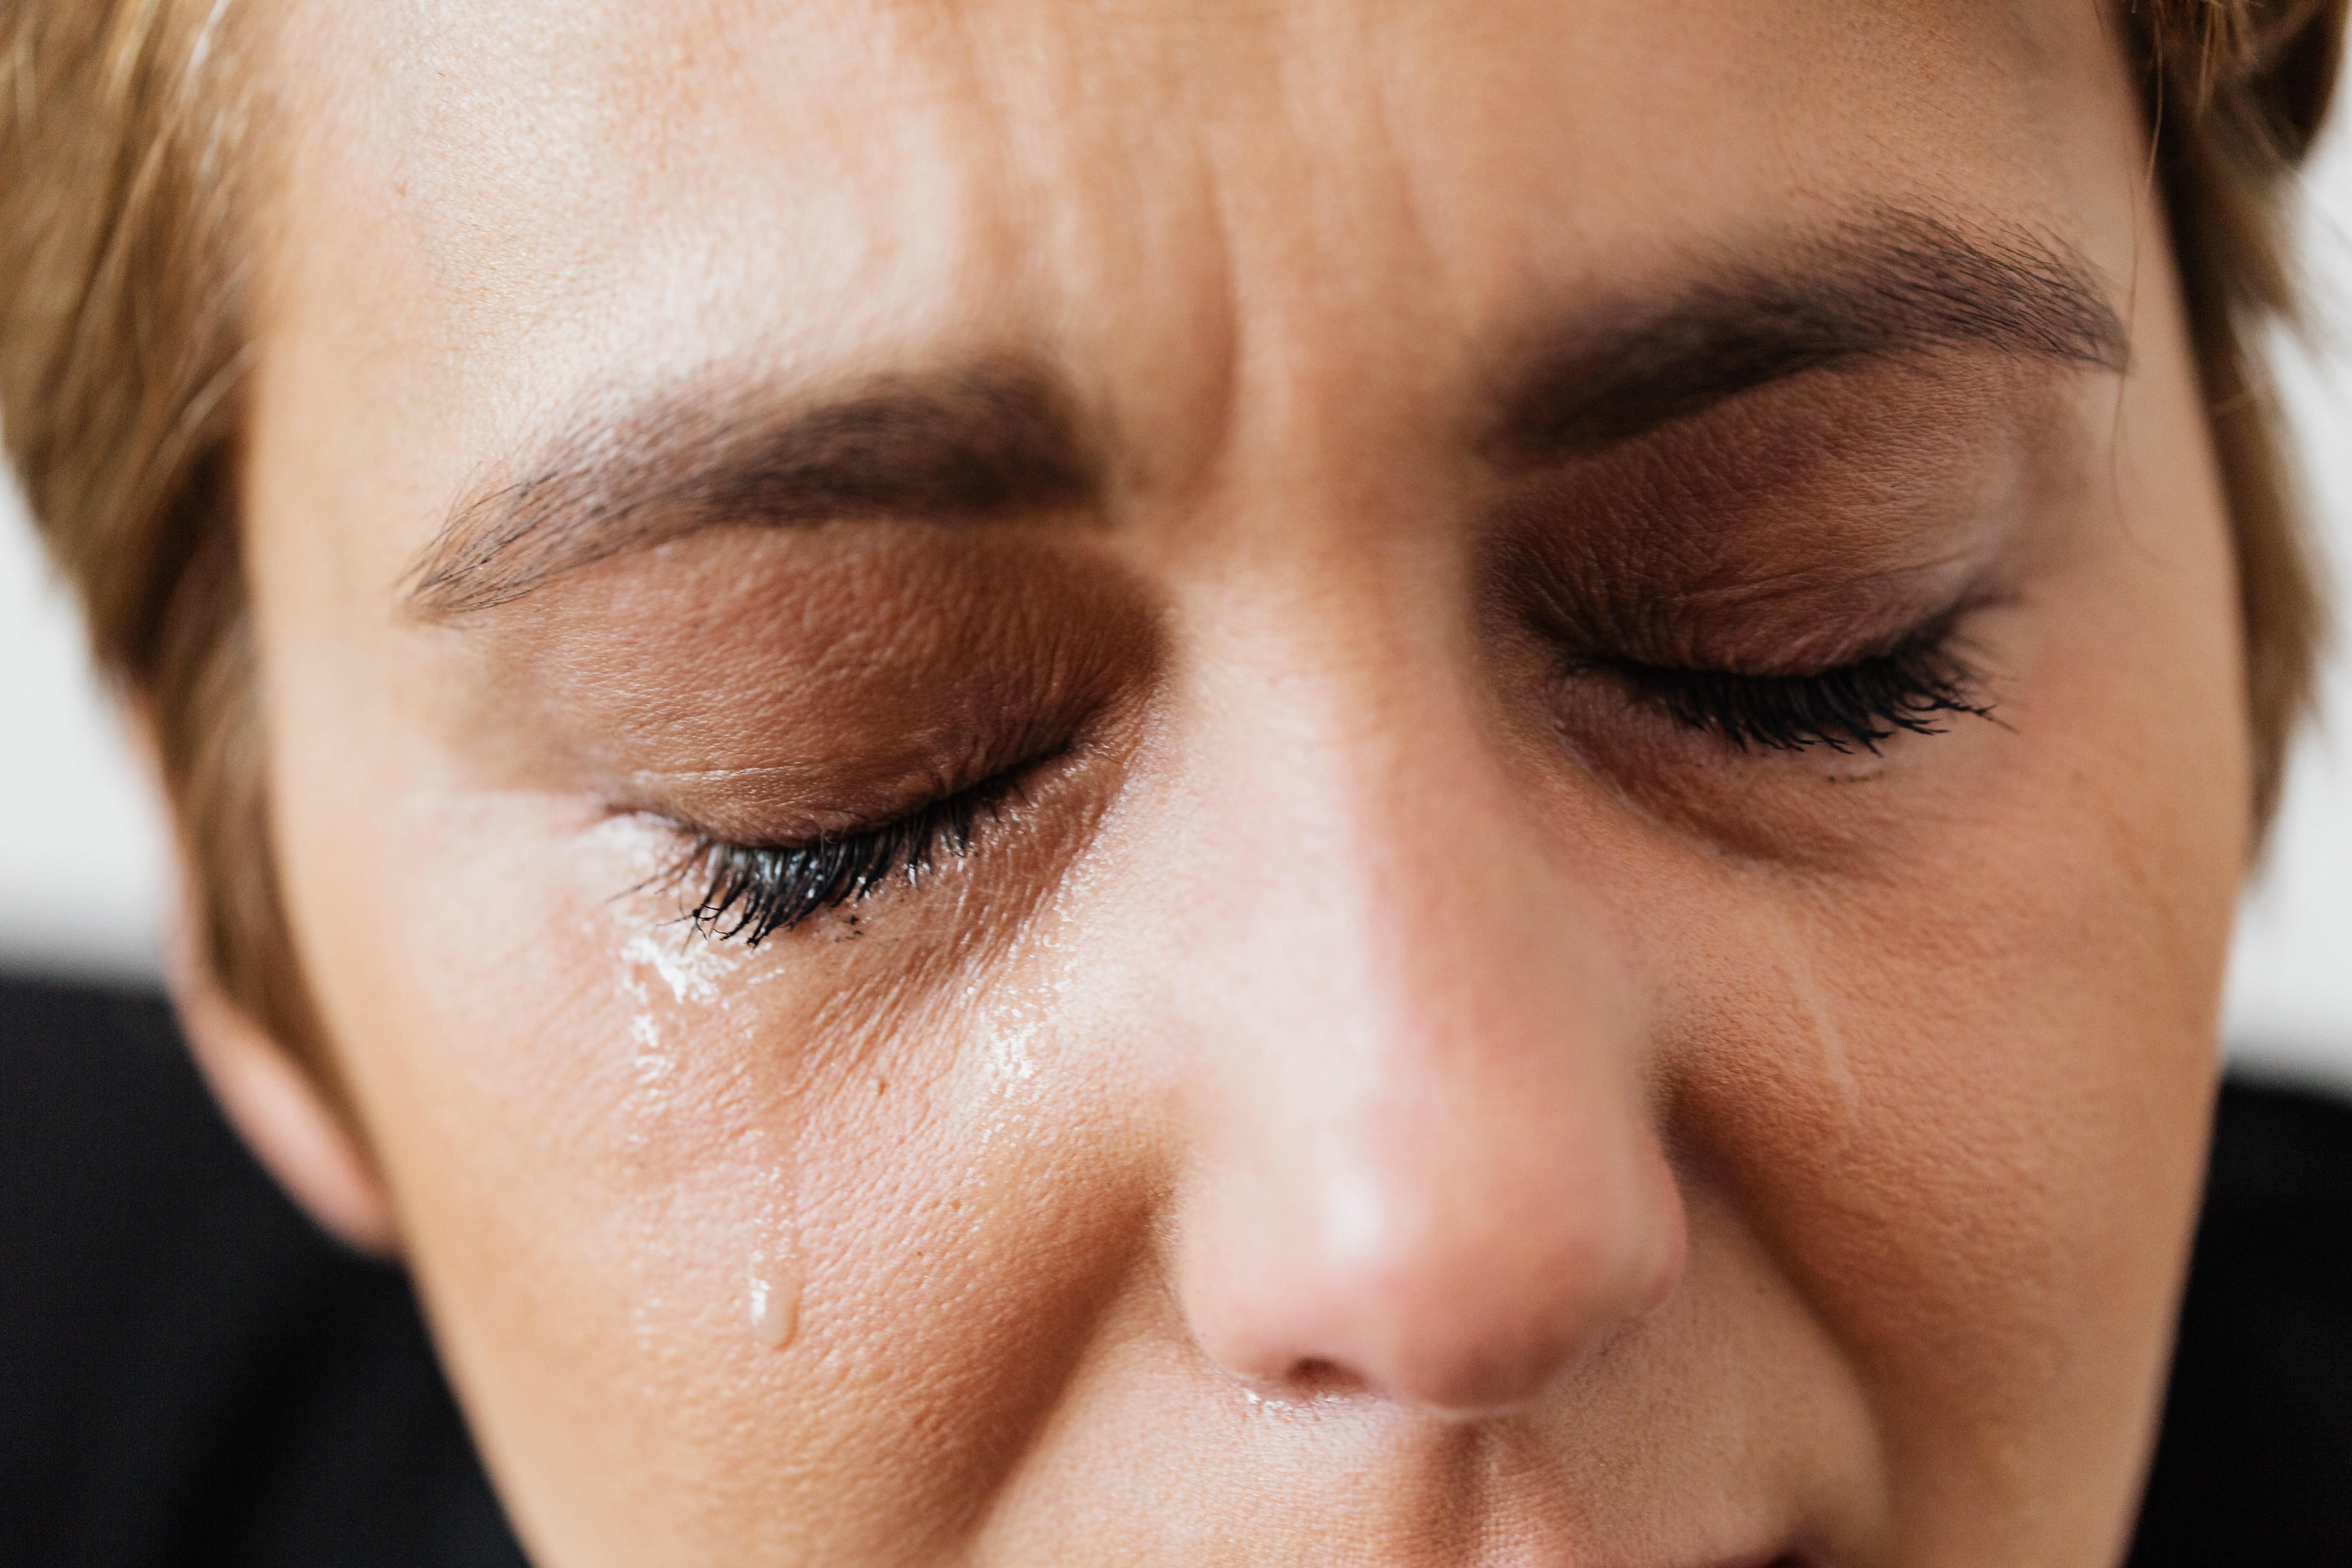 Janice dashed out of the store crying after she was turned down for the job   Photo: Pexels